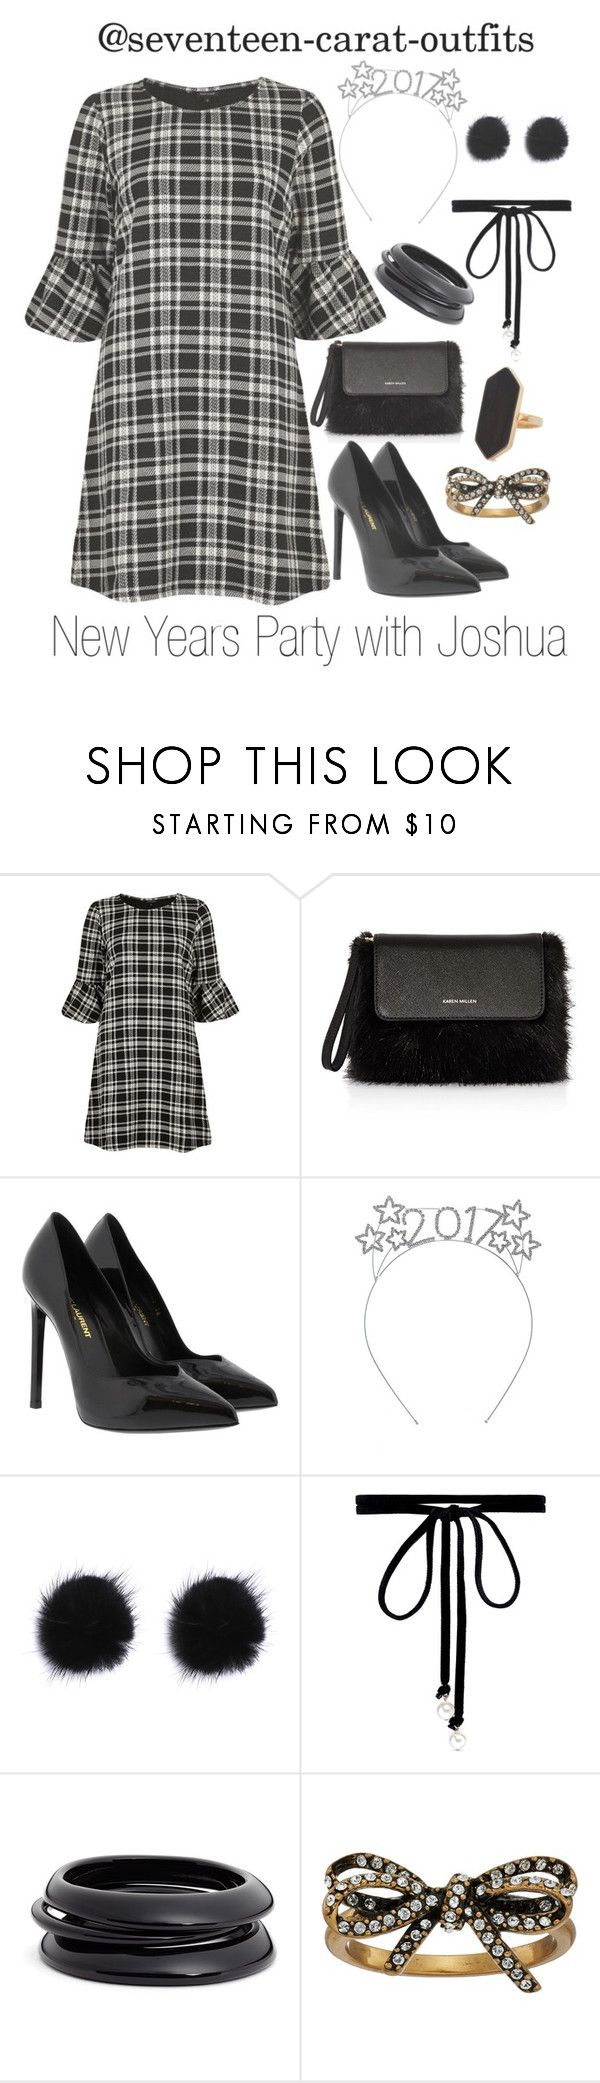 """""""New Years Party with Joshua"""" by seventeen-carat-outfits ❤ liked on Polyvore featuring River Island, Karen Millen, Yves Saint Laurent, Joomi Lim, ZENZii, Marc Jacobs and Jaeger"""